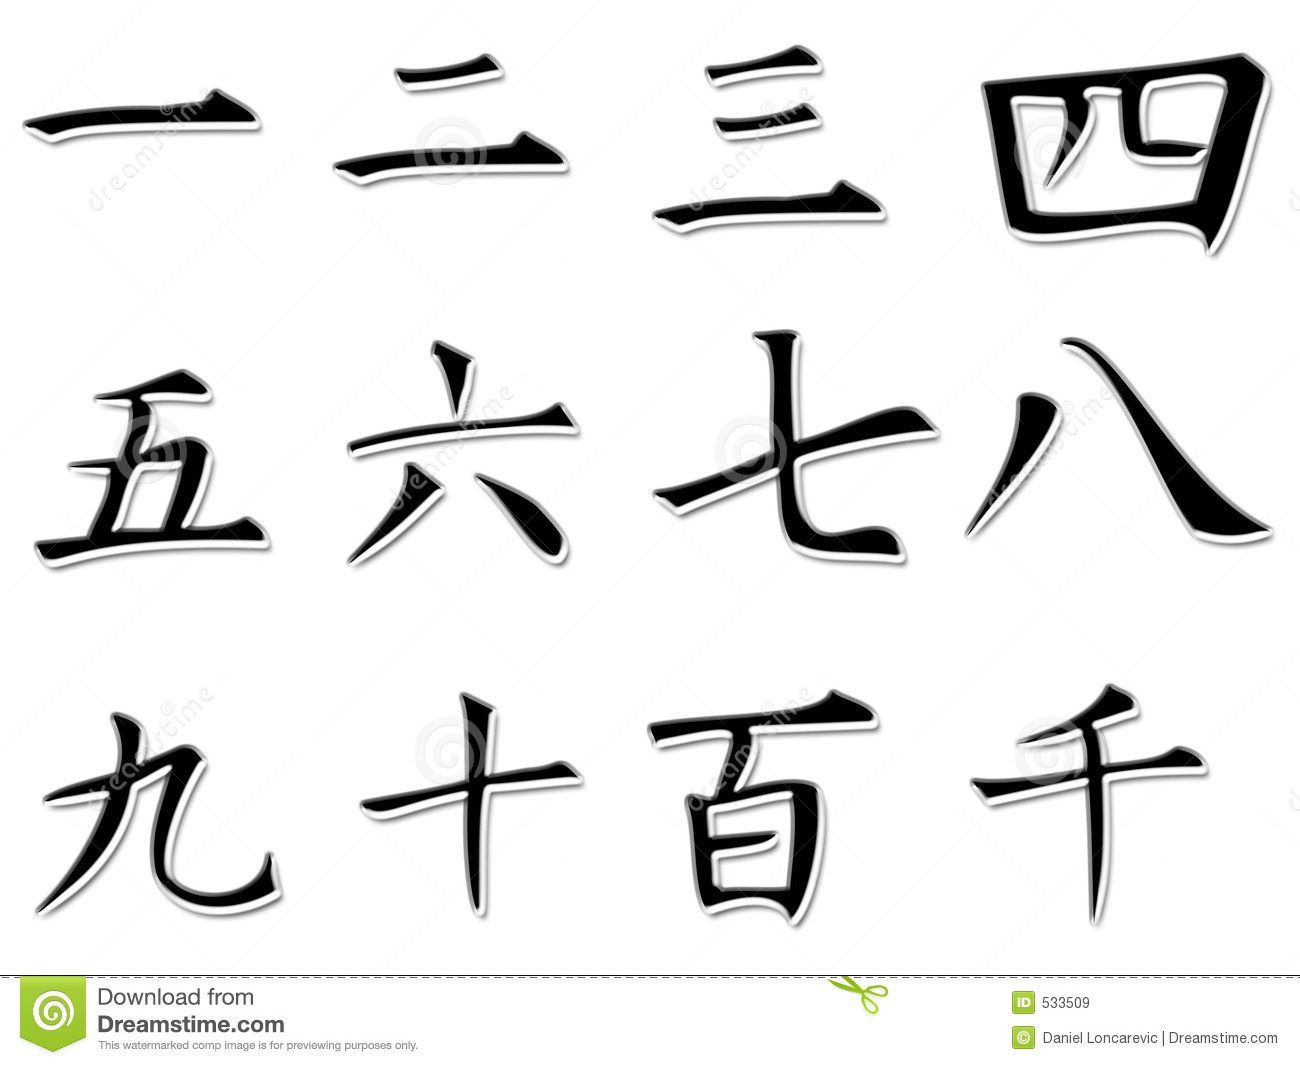 Japanese Numbers Royalty Free Stock Images